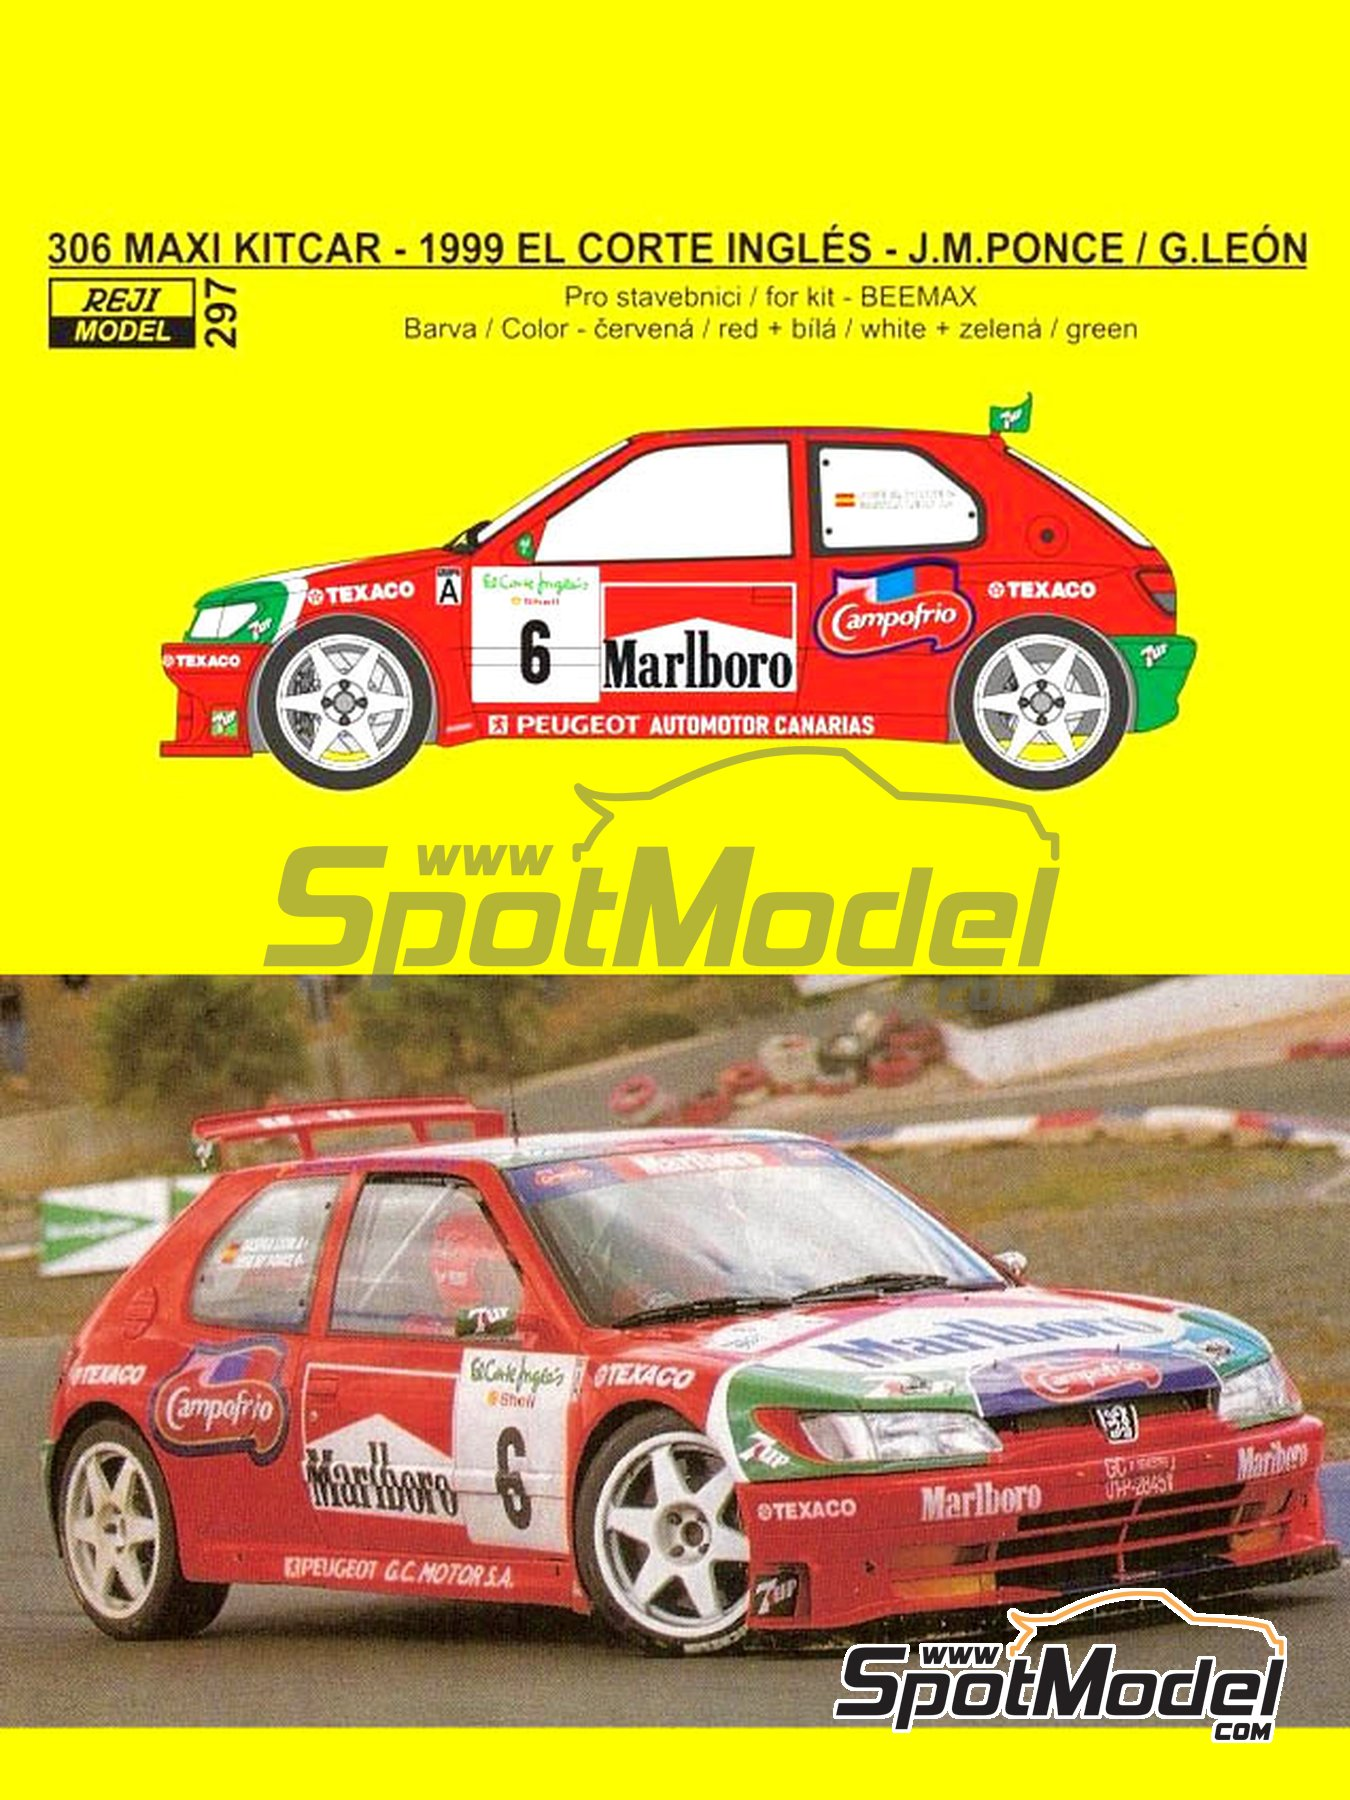 Peugeot 306 Maxi Kitcar Marlboro - El Corte Ingles Rally 1999 | Marking / livery in 1/24 scale manufactured by Reji Model (ref. REJI-297) image